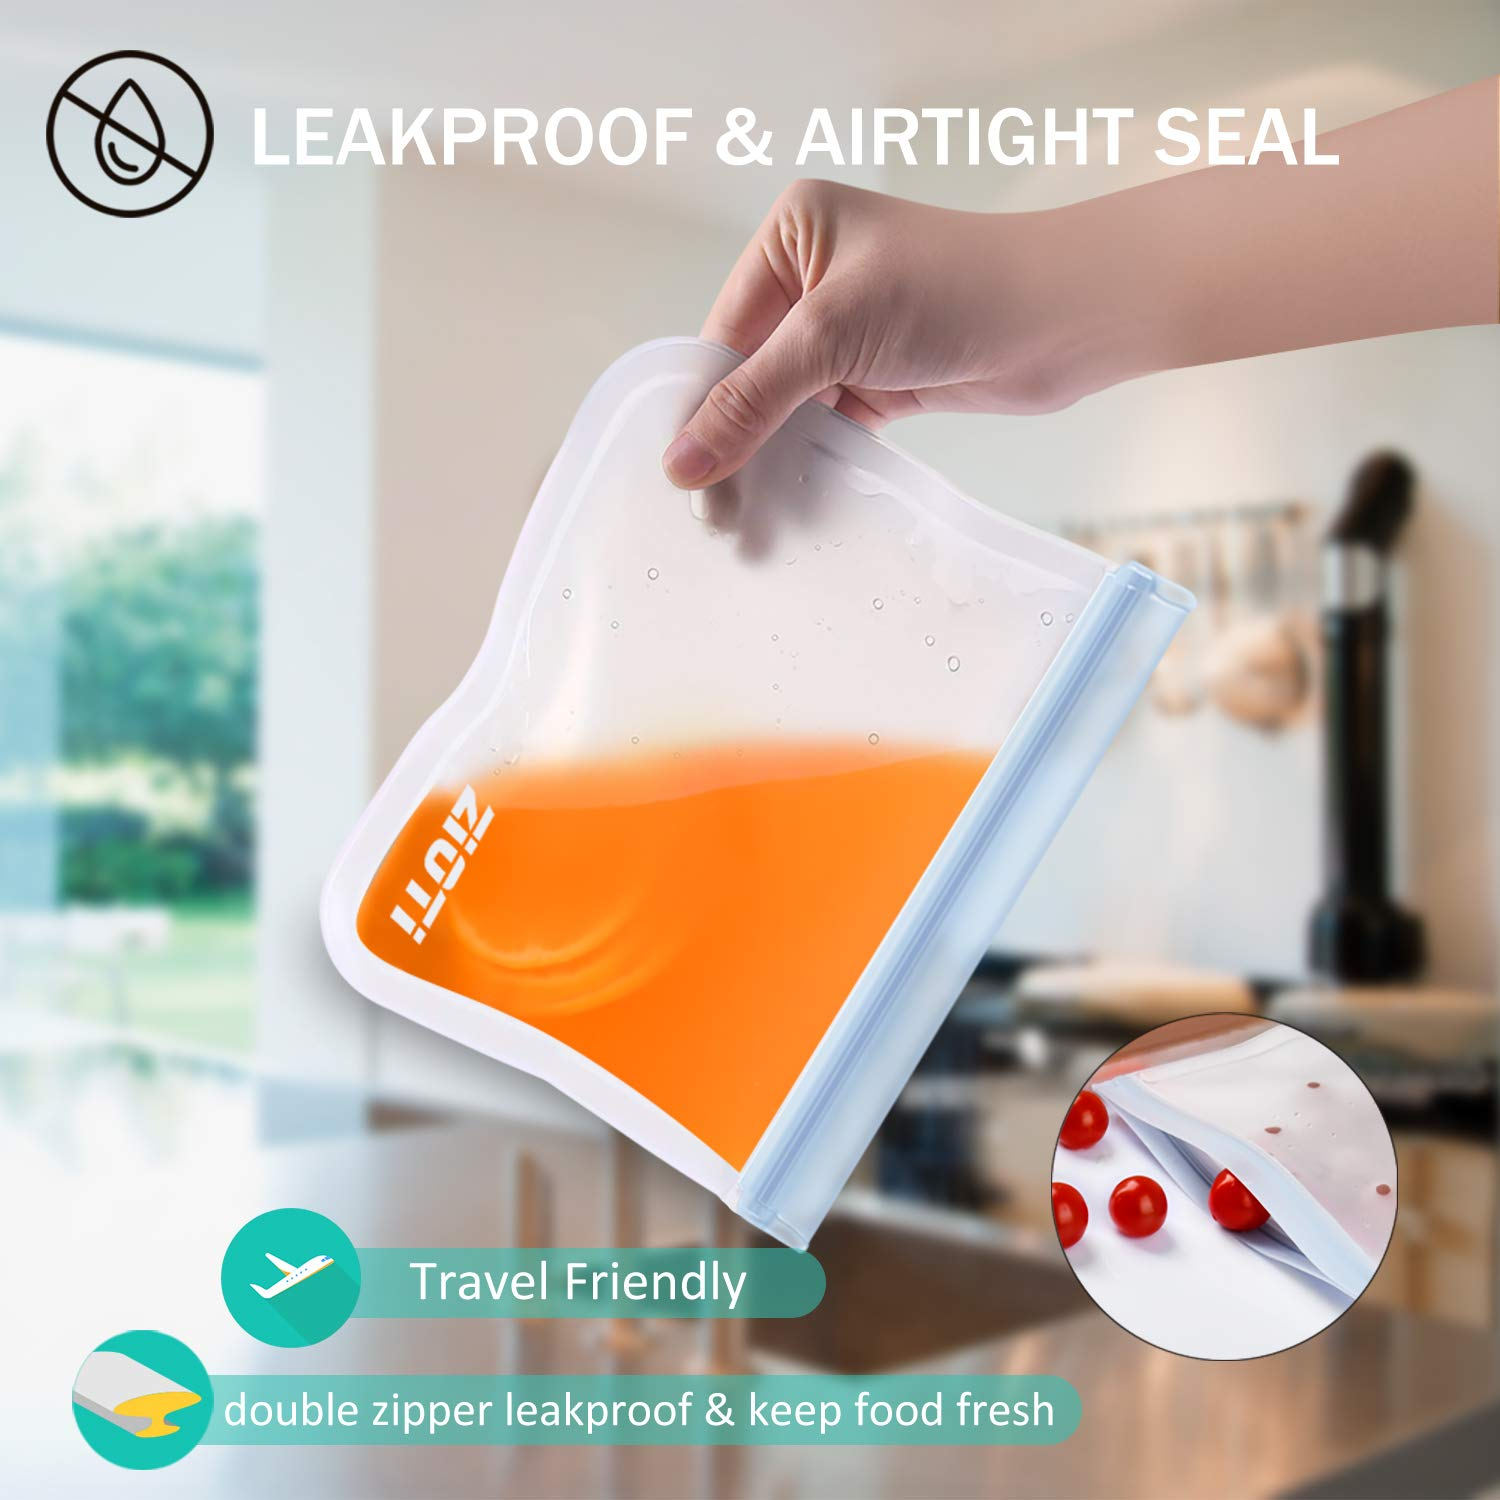 Reusable Storage Bags 10 Pack, 2 Reusable Sandwich Bags, 5 Reusable Freezer Bags and 3 Reusable Snack Bags, 2019 BPAFREEExtra Thick Leakproof Easy Seal Gallon Ziplock Lunch Bags for Home and Travel